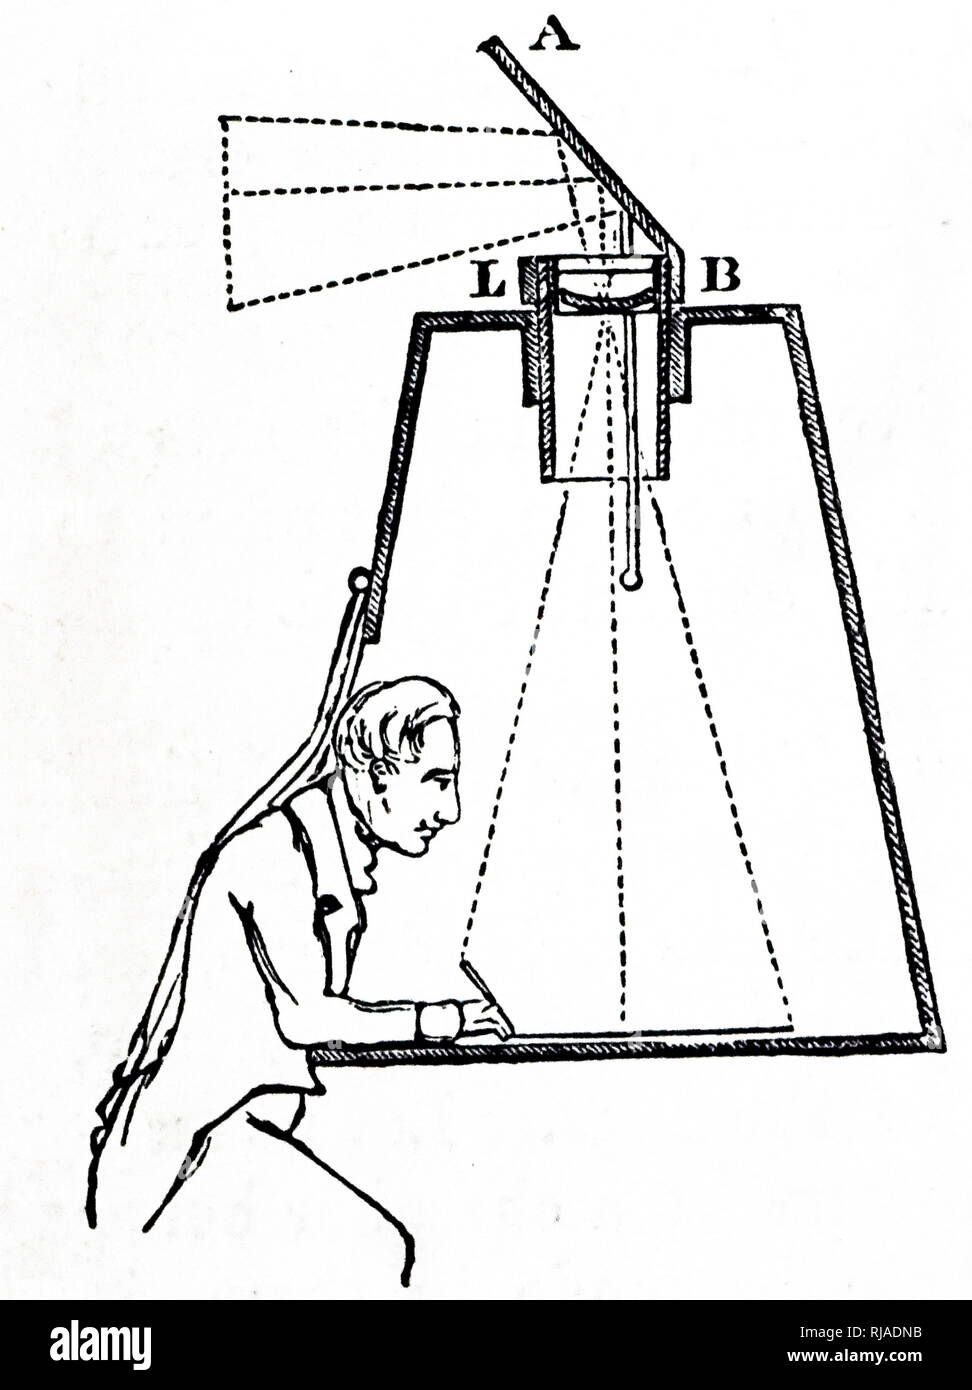 medium resolution of camera obscura illustration stock photos camera obscura diagram of a simple camera obscura the ancestor of the photographic